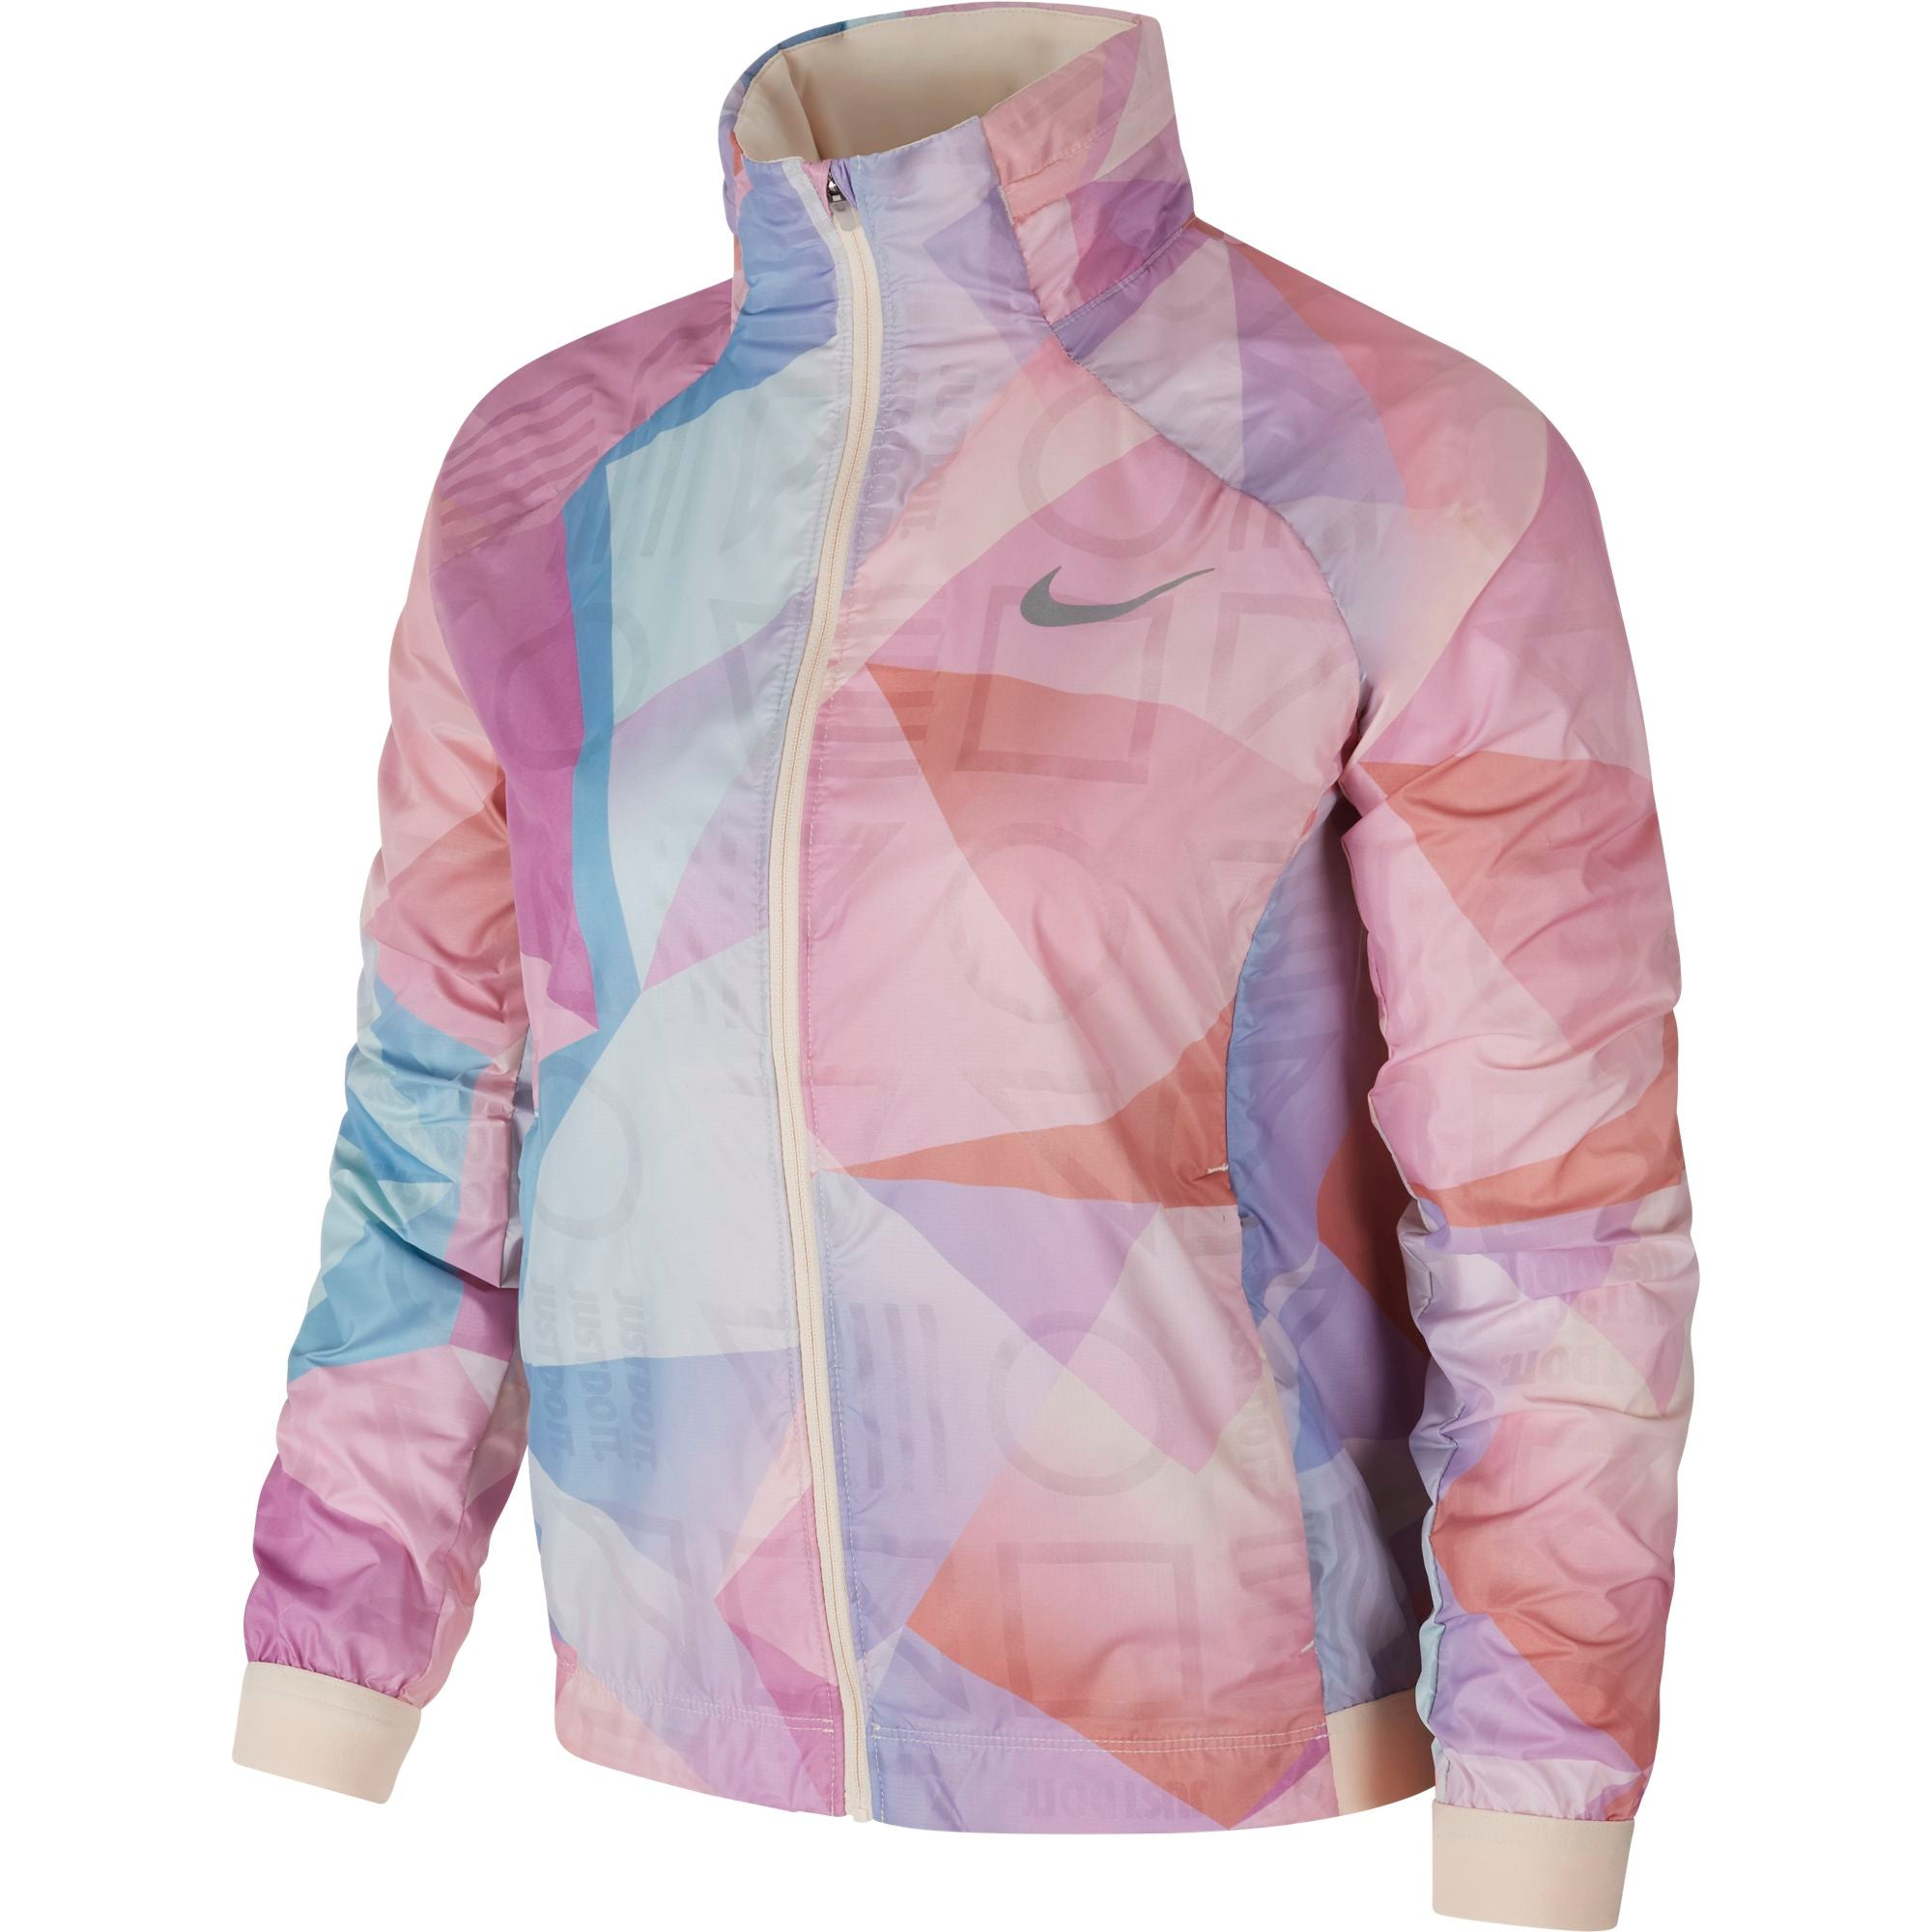 405f9e511 Women s Shield Hooded Printed Running Jacket – Gazelle Sports